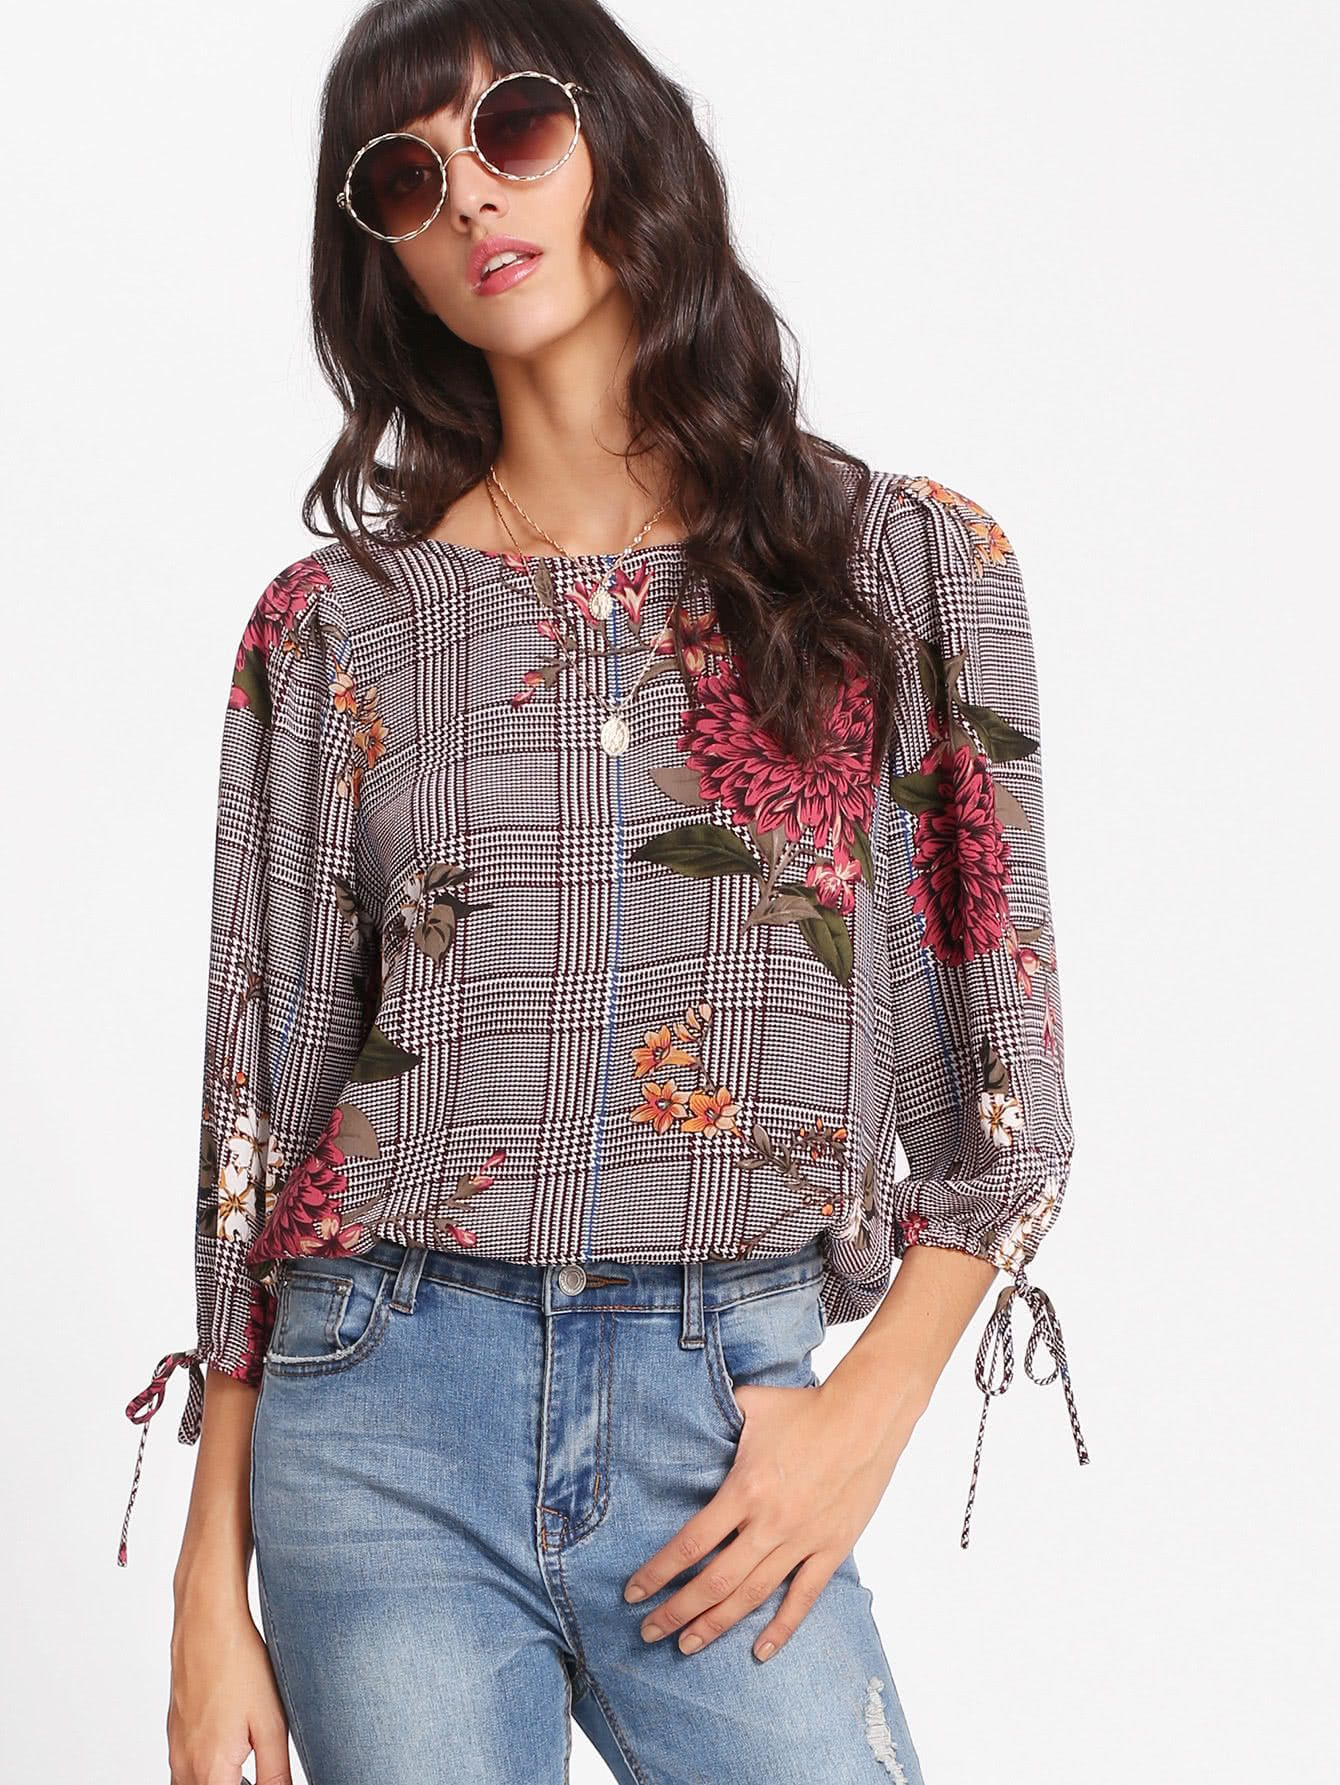 05a0ad25c37 Shop Tie Cuff Plaid And Floral Top online. SheIn offers Tie Cuff Plaid And  Floral Top   more to fit your fashionable needs.